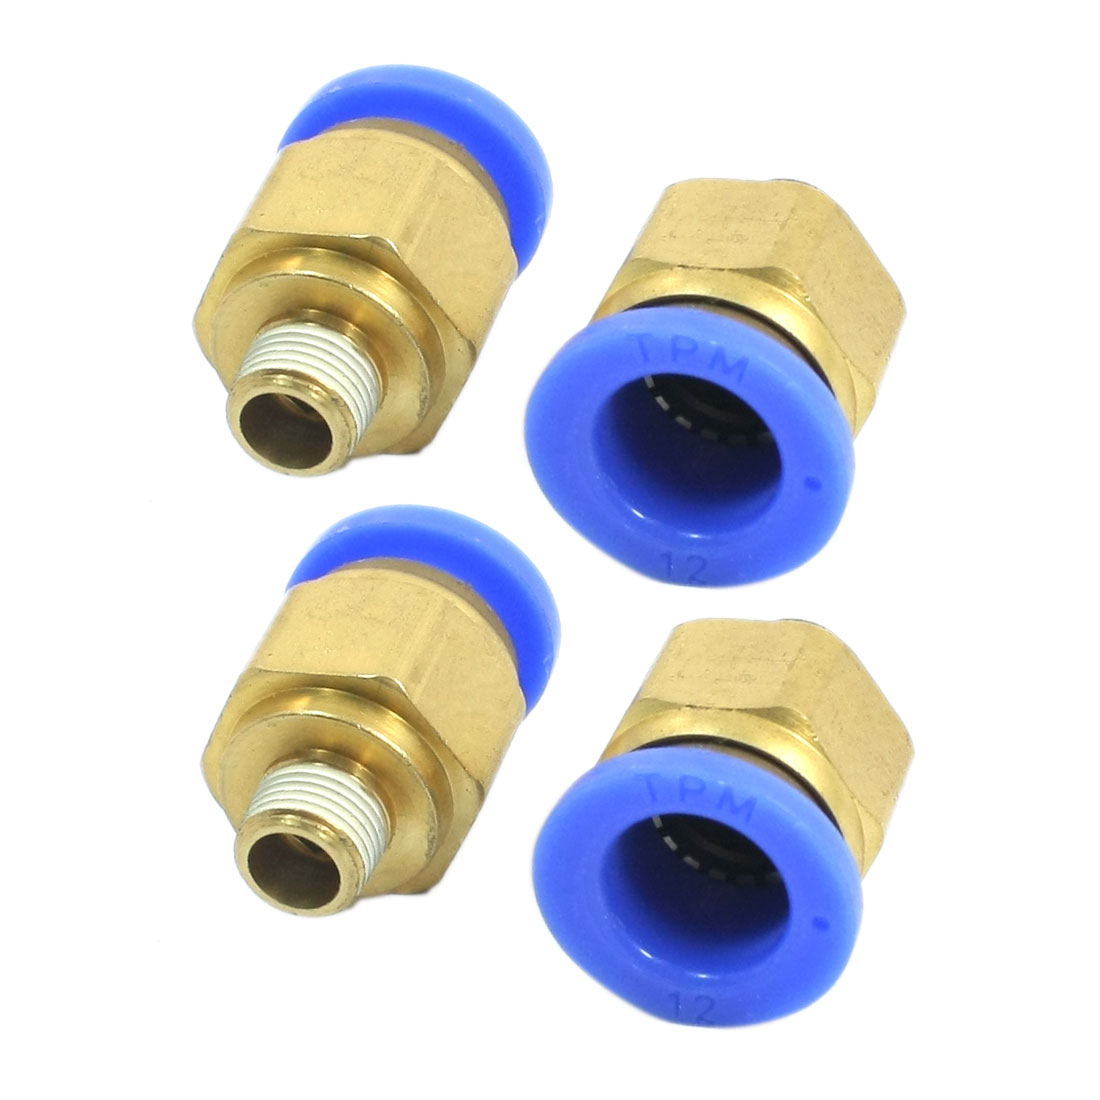 4 Pcs 12mm Push in Tube 1/8PT External Threaded Dia Pneumatic Air Quick Fitting Coupler Joint Connector Adapter